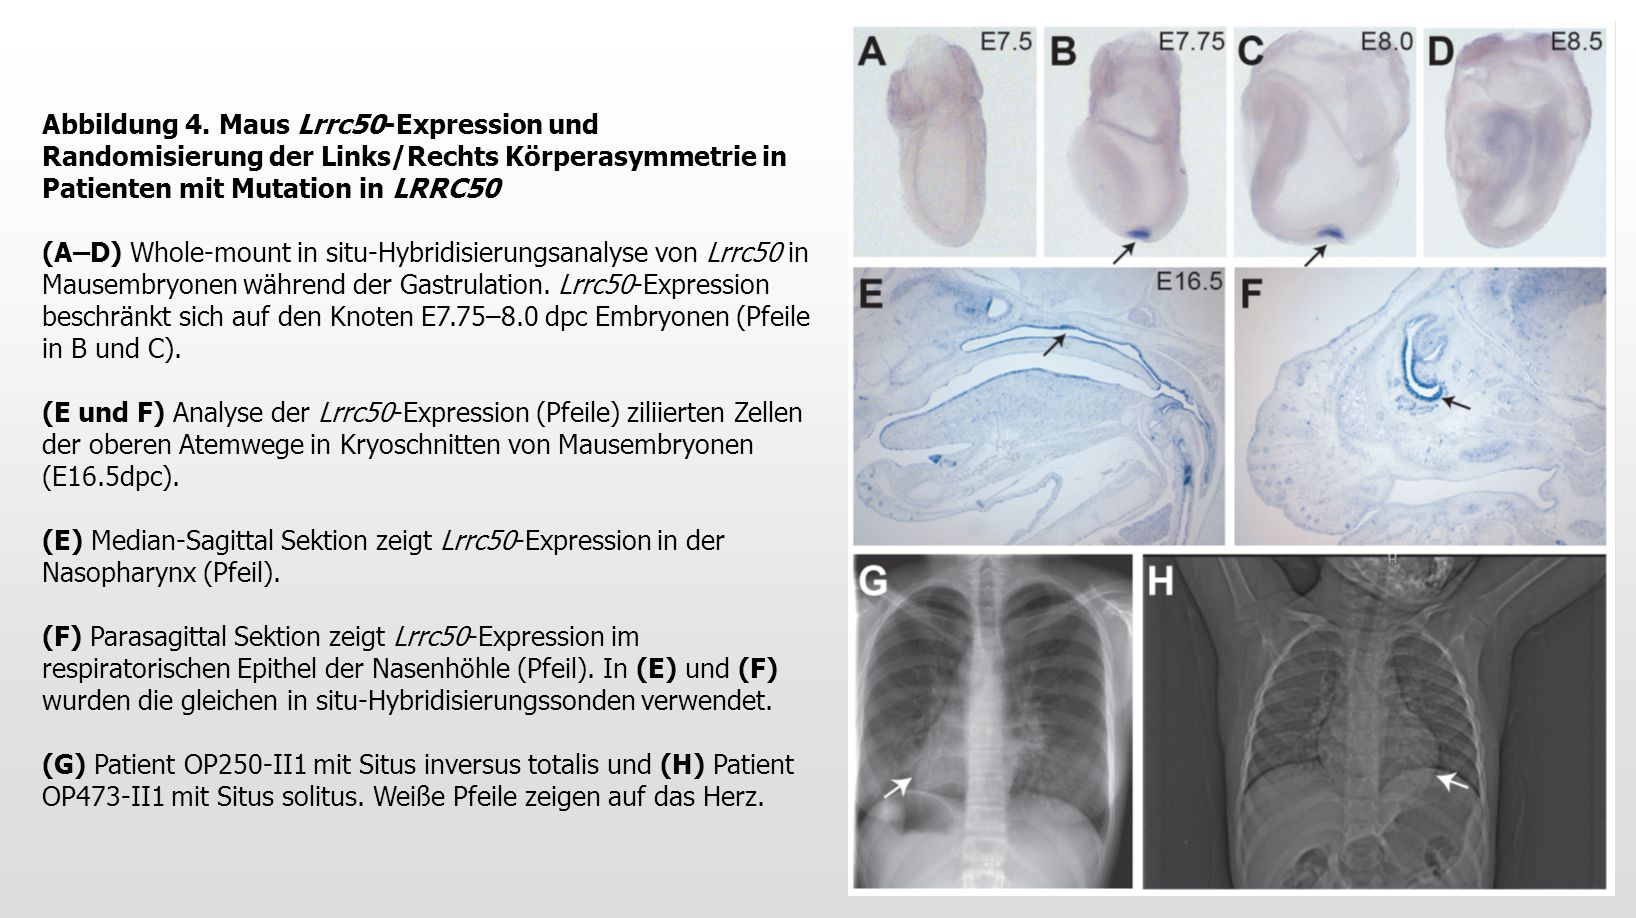 Abbildung 4. Maus Lrrc50-Expression und Randomisierung der Links/Rechts Körperasymmetrie in Patienten mit Mutation in LRRC50 (A–D) Whole-mount in situ